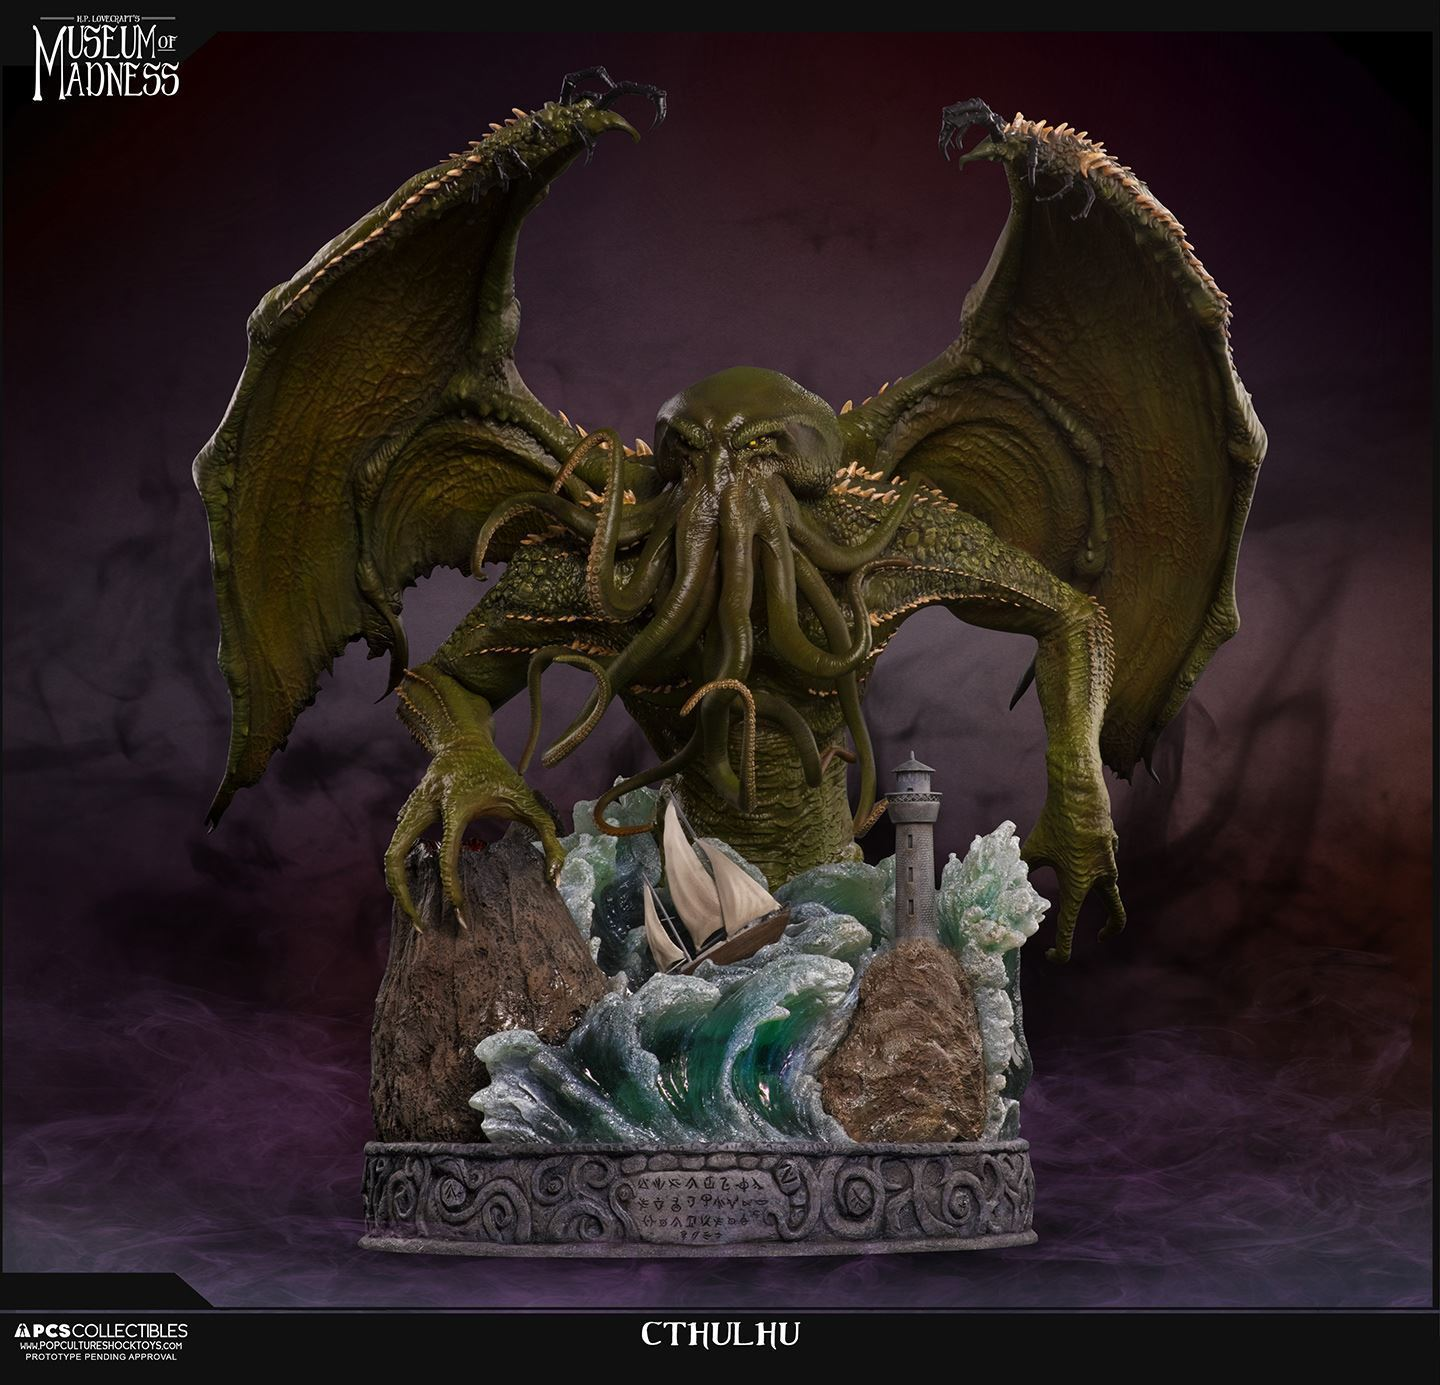 PCS Collectibles - H.P. Lovecraft's Museum of Madness - Cthulhu